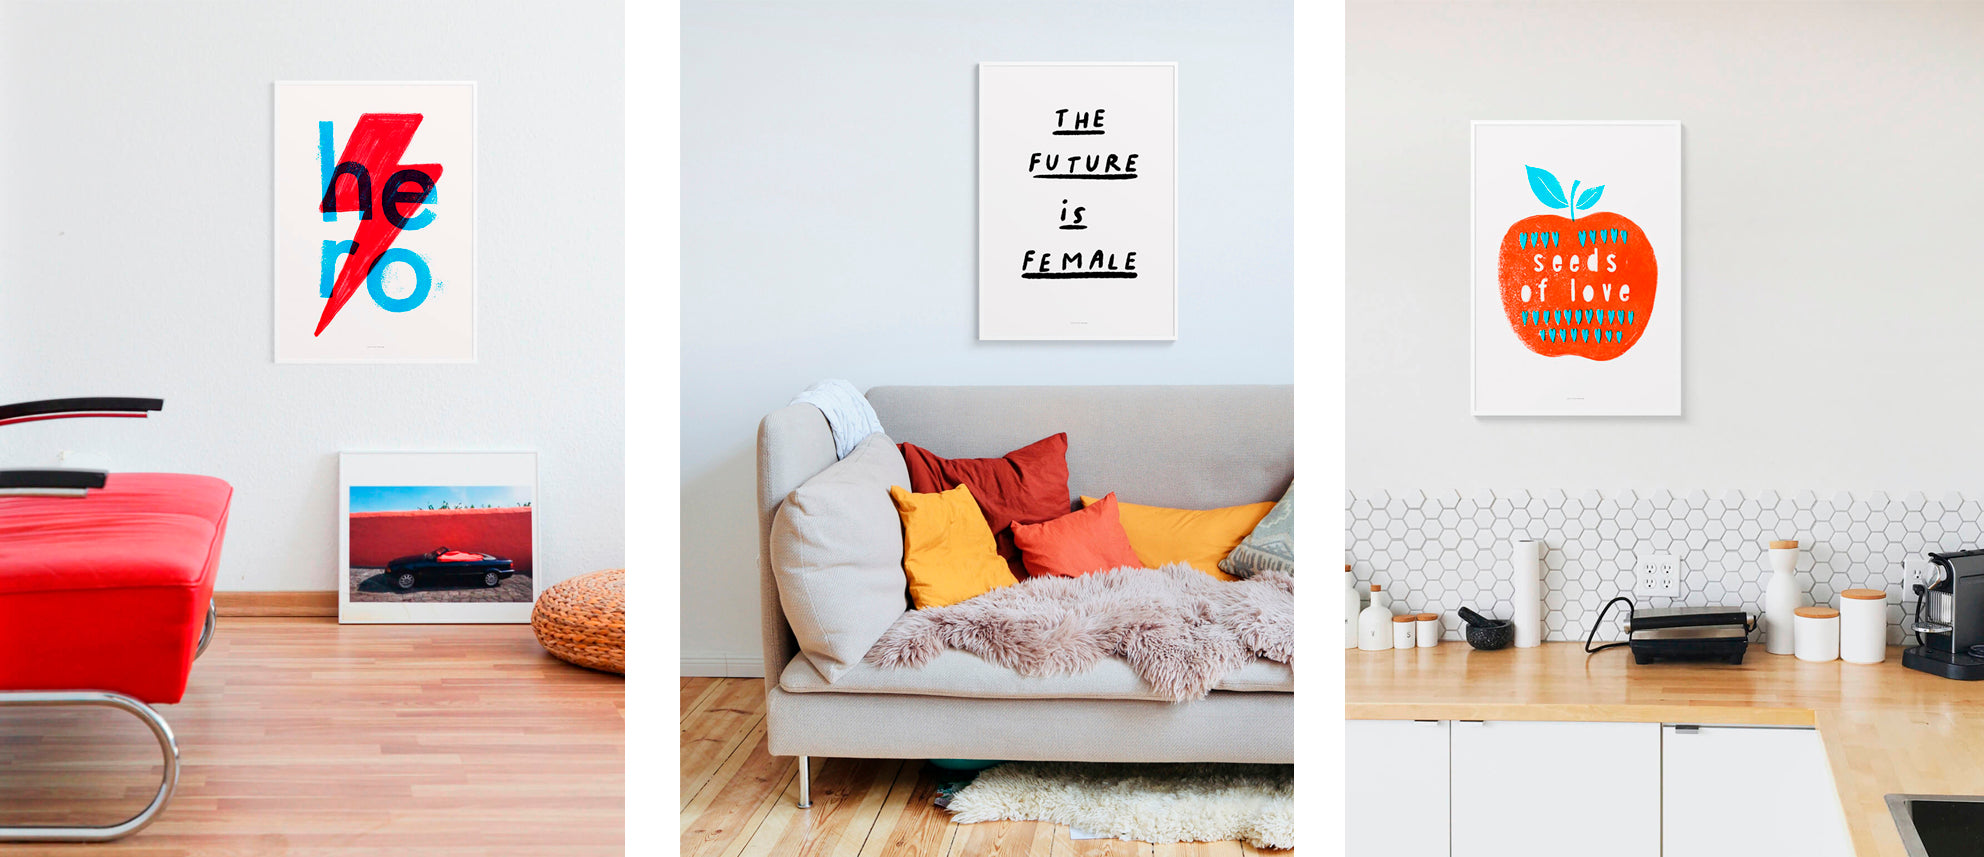 Just Cool Design wholesale prints and posters